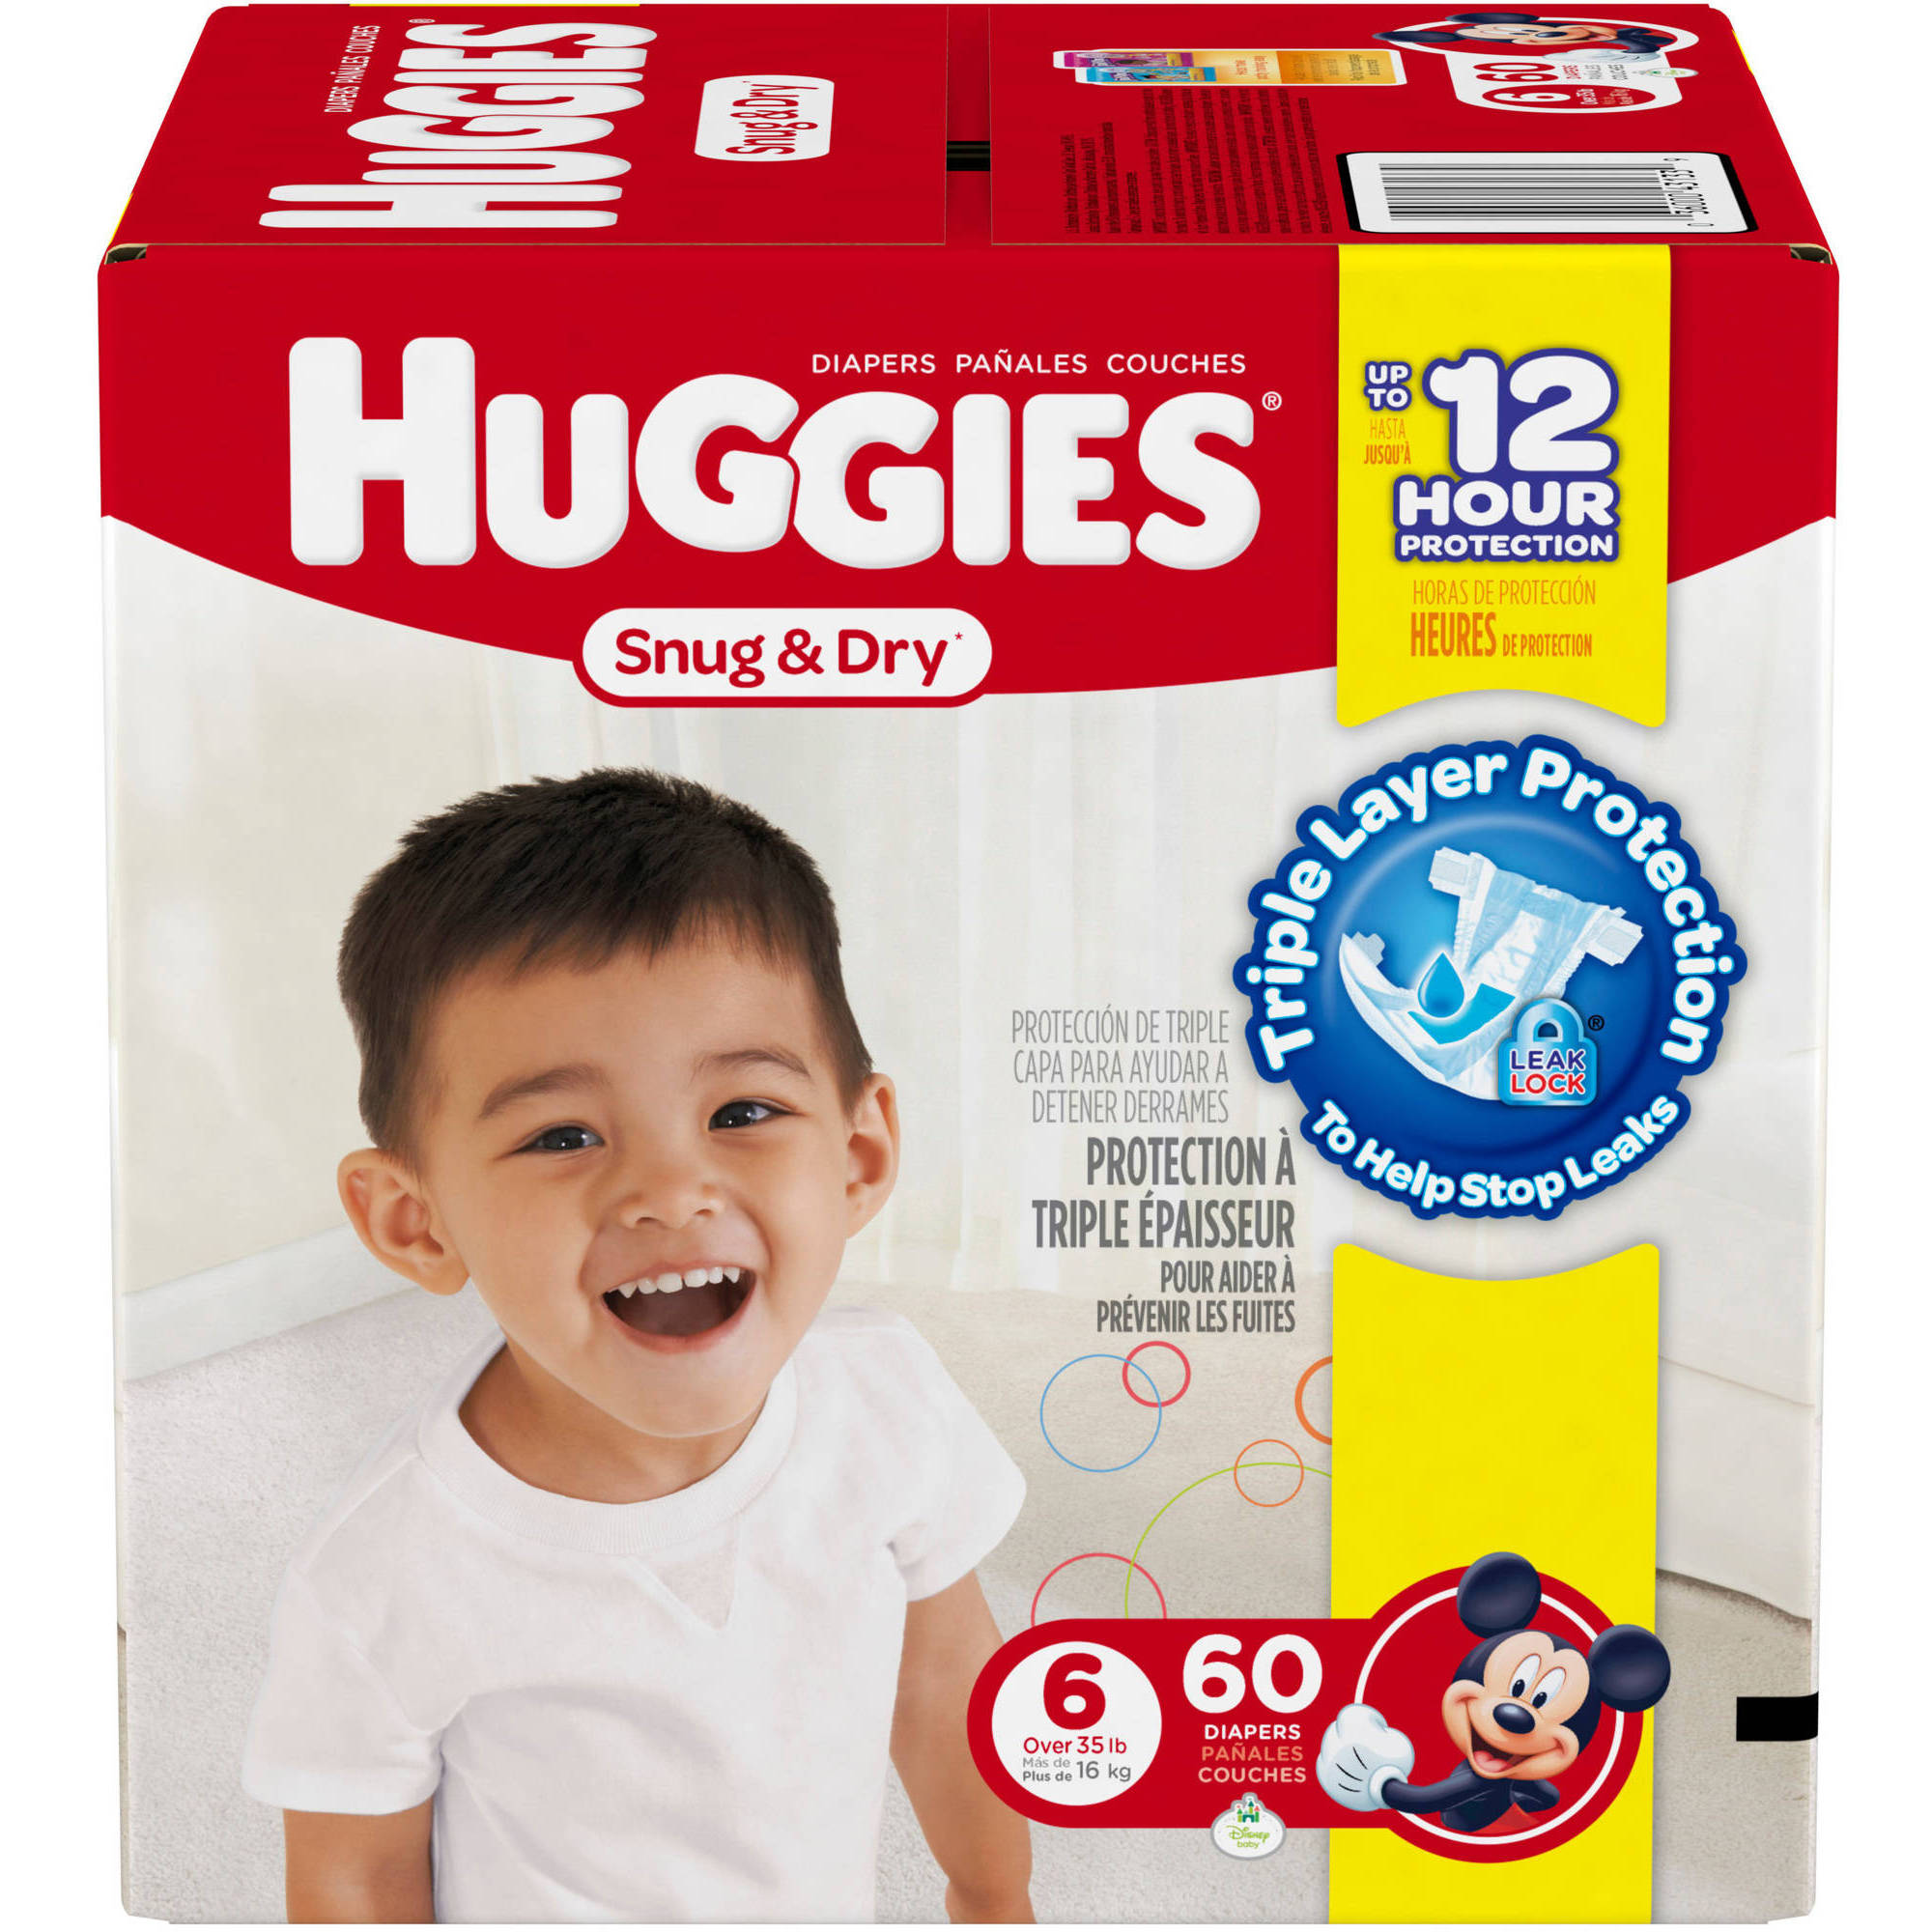 HUGGIES Snug & Dry Diapers, Size 6 (Choose Diaper Count)